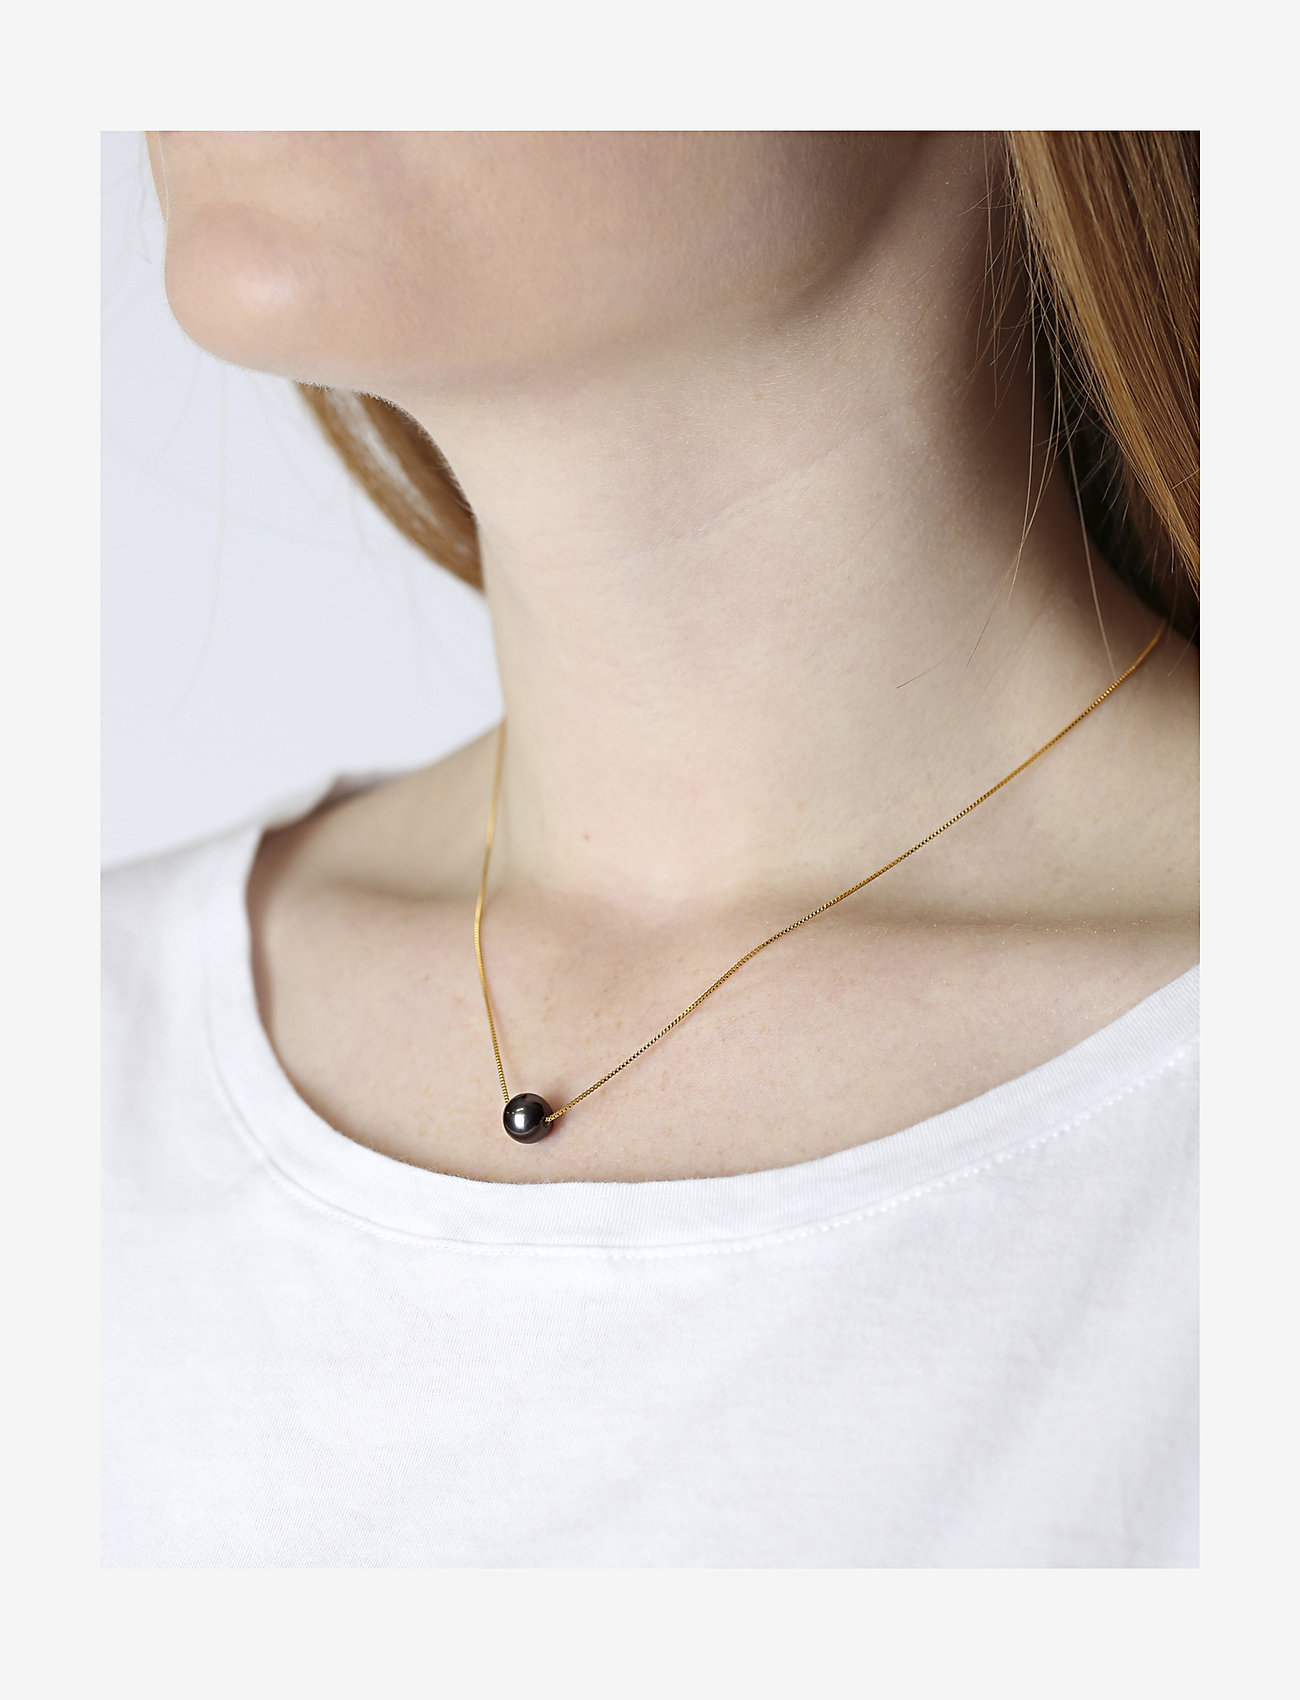 Syster P - Pearly Short Necklace Black - kettingen met hanger - gold - 1